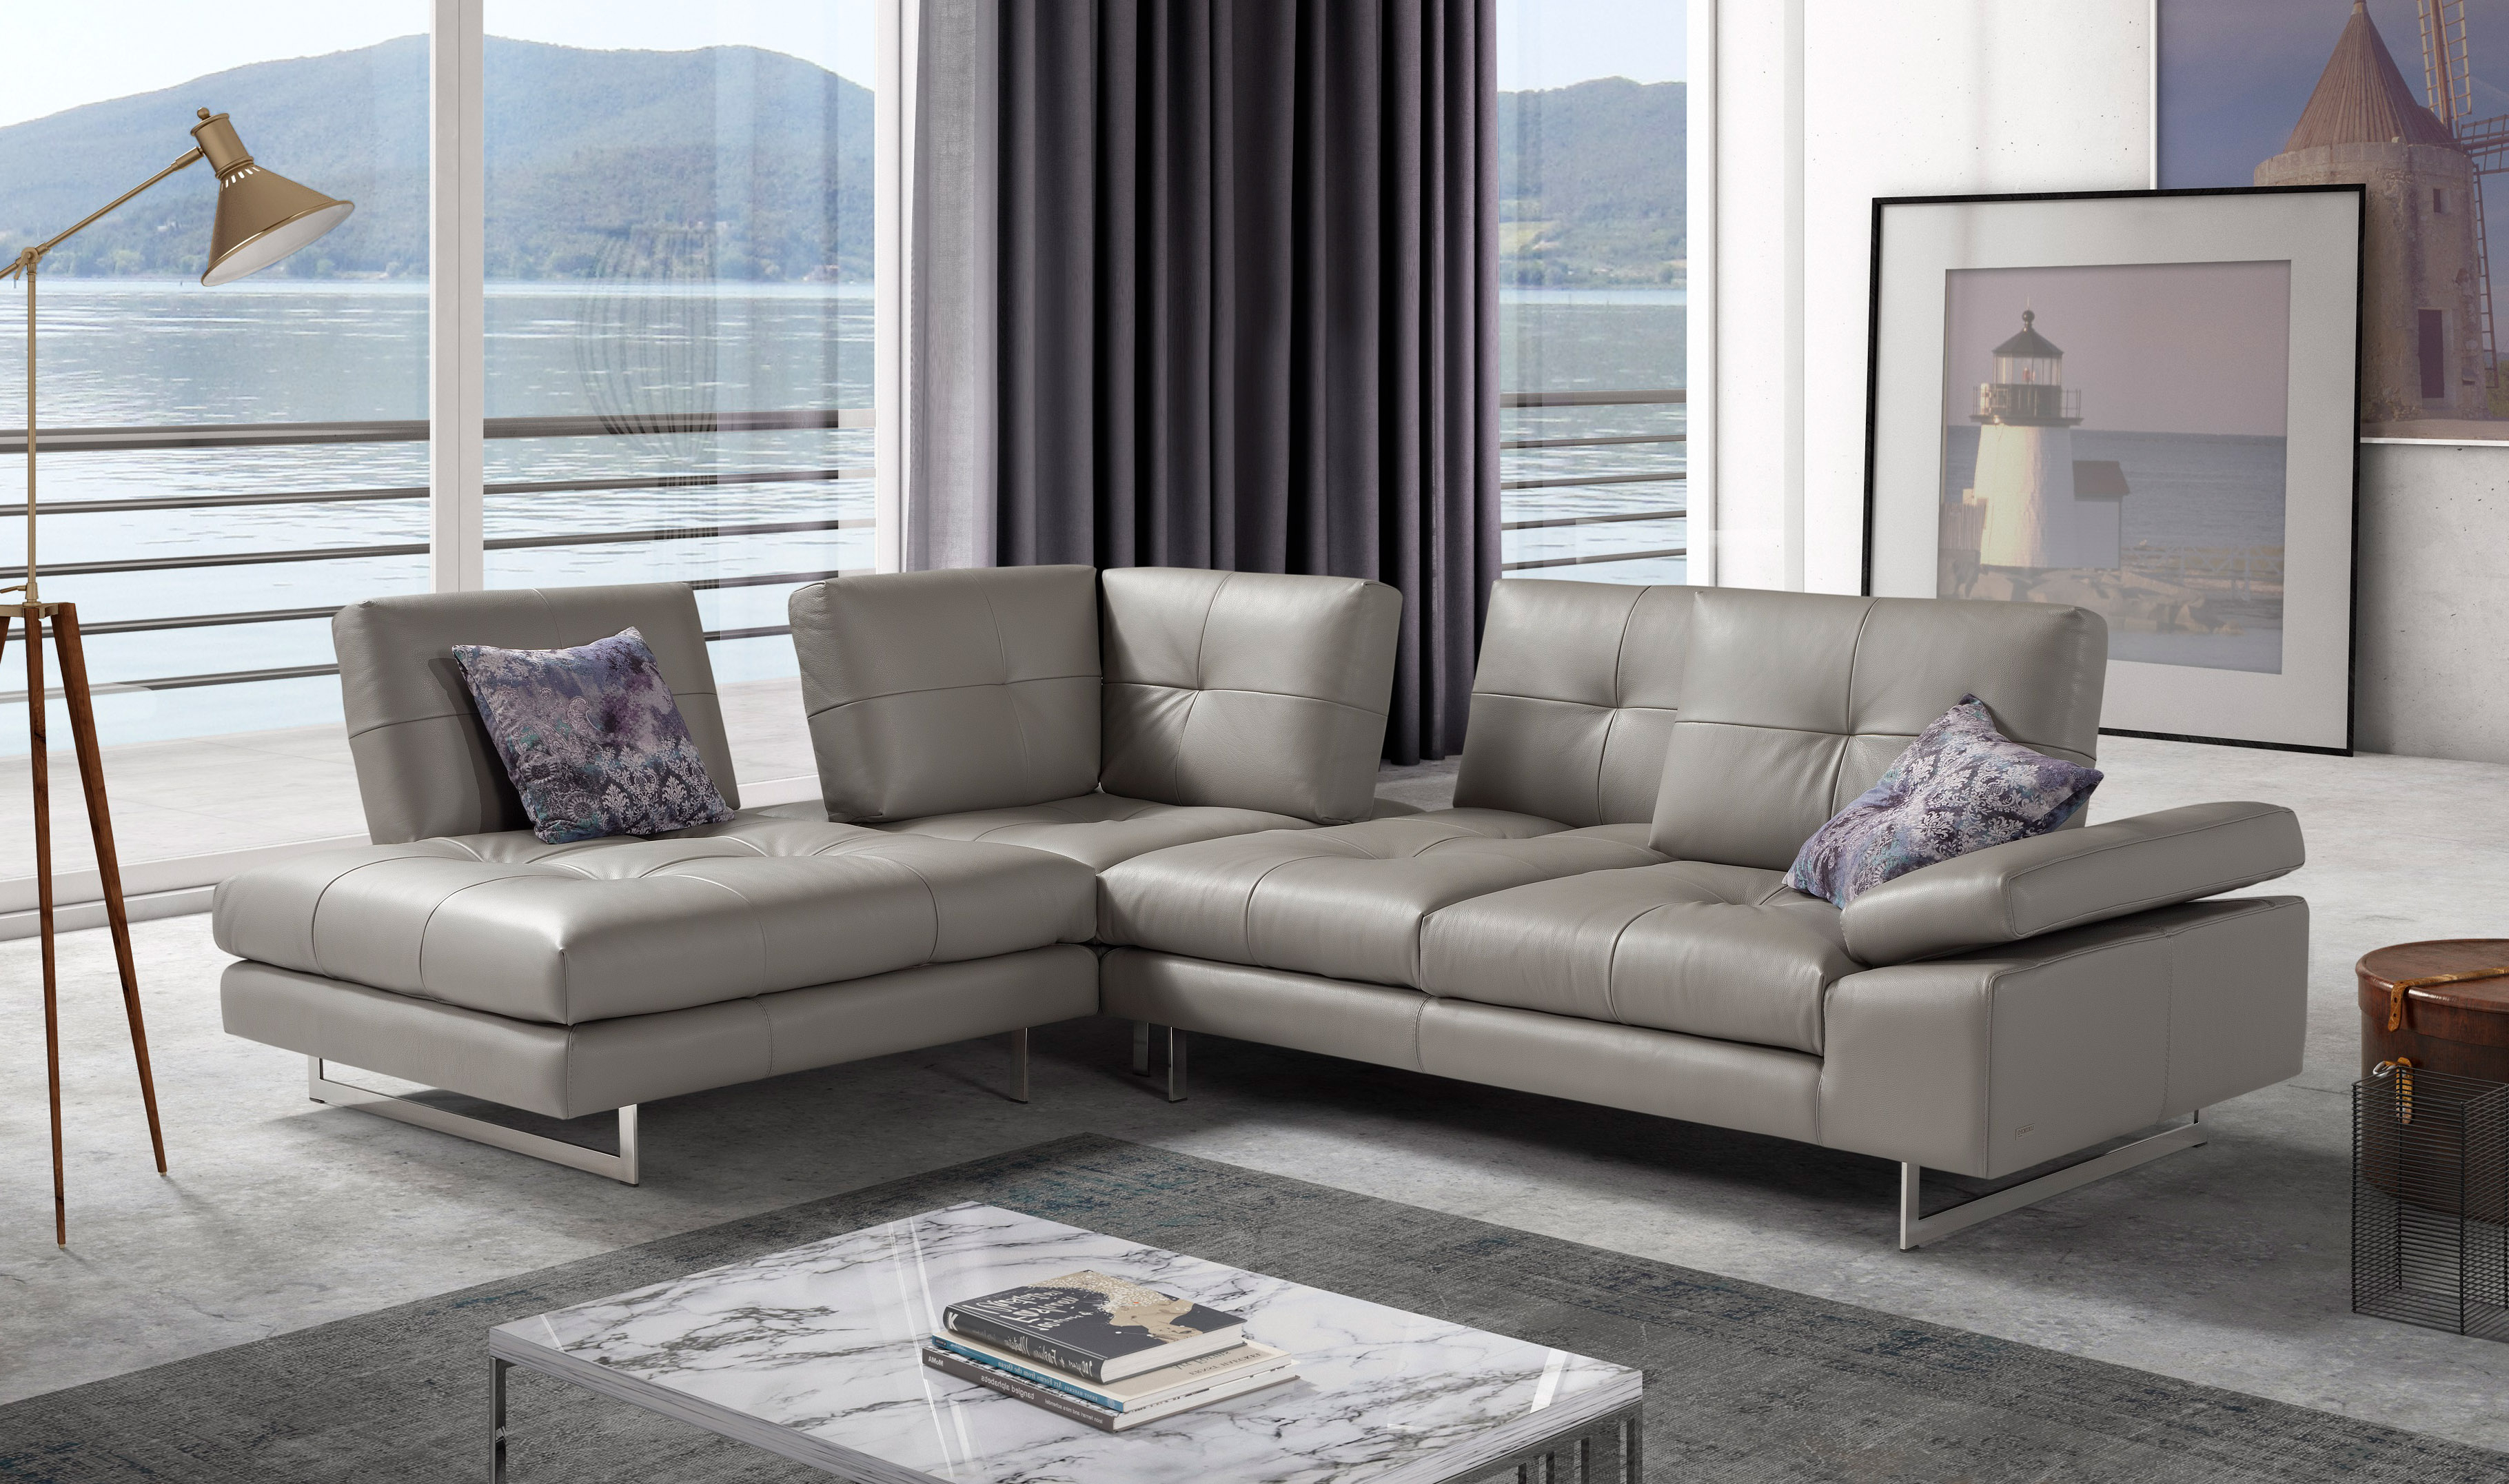 Advanced Adjustable Tufted Leather Sectional With Chaise Aurora Intended For Trendy Aurora 2 Piece Sectionals (View 1 of 20)